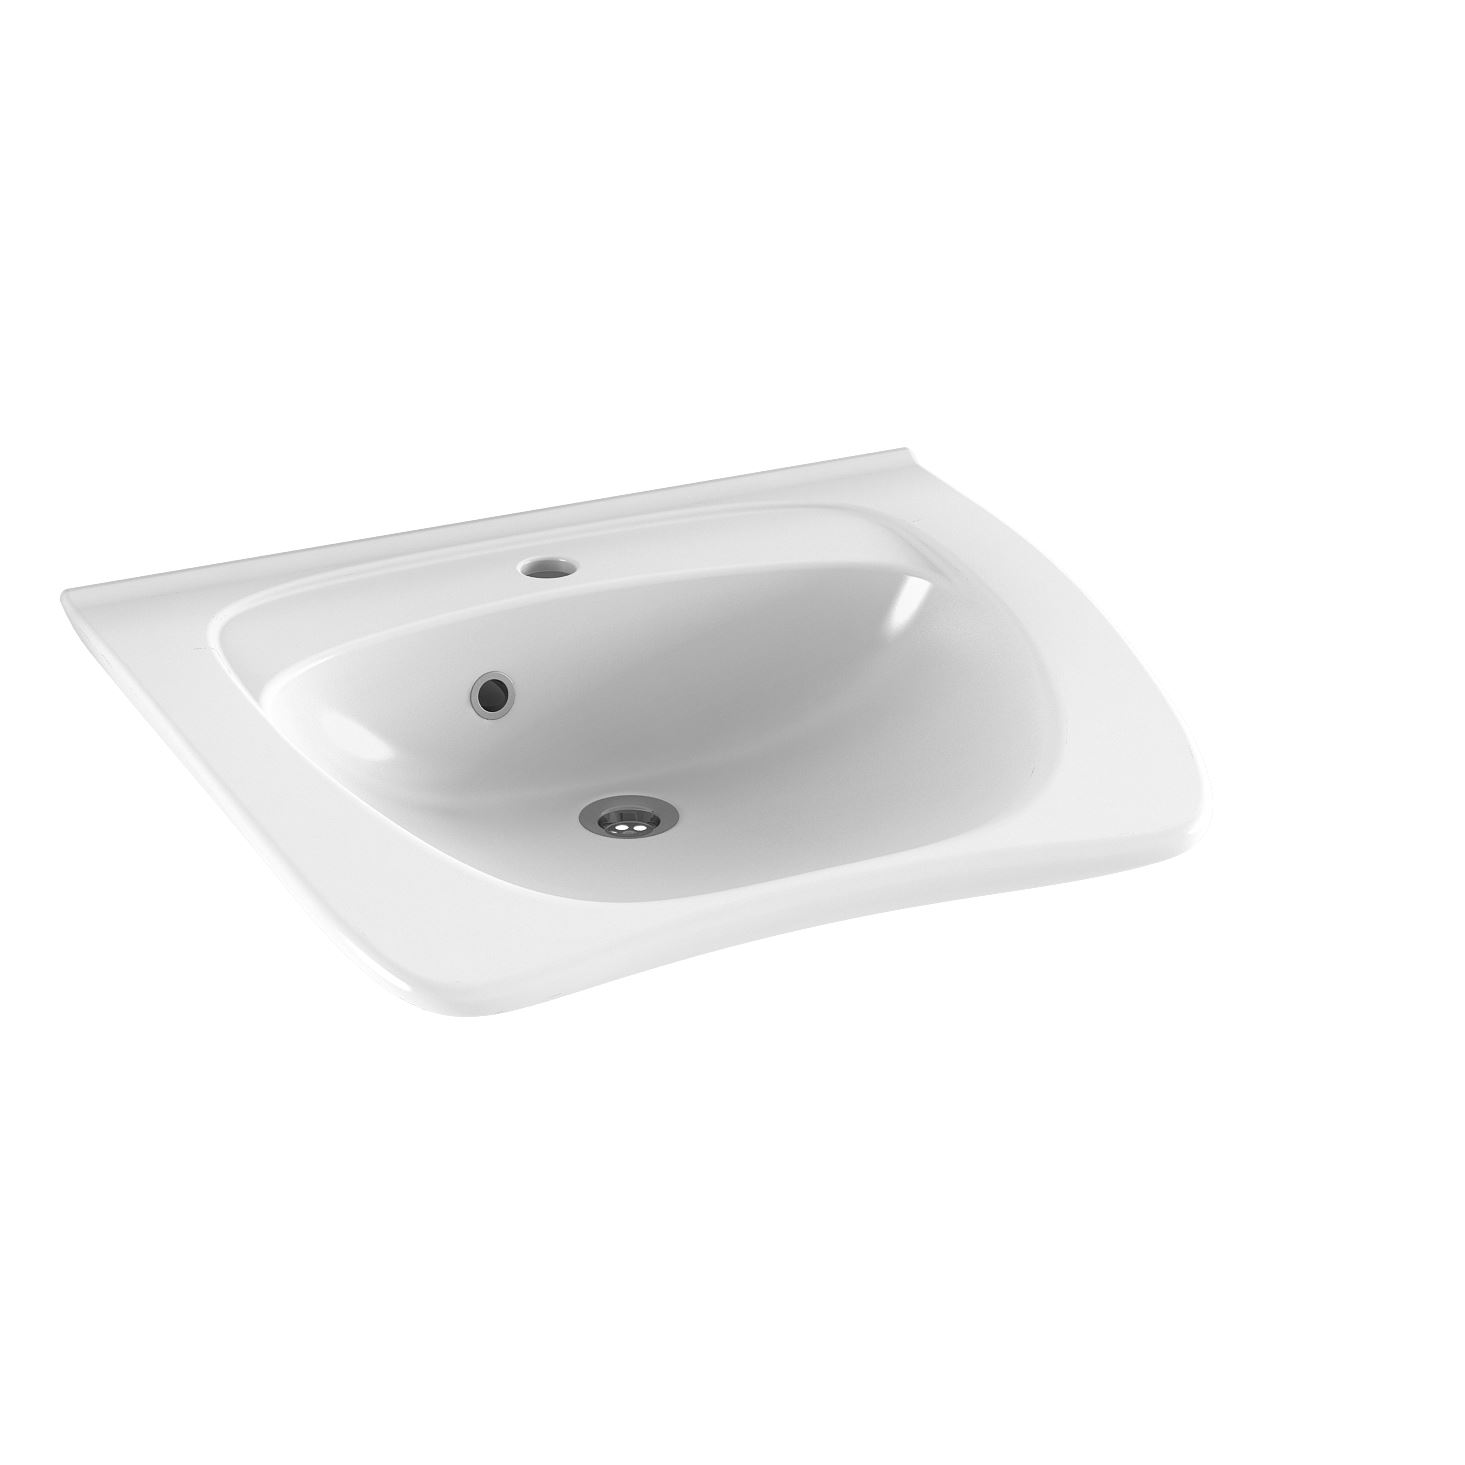 MATRIX NEW CURVE ergonomic wash basin with tap hole and overflow